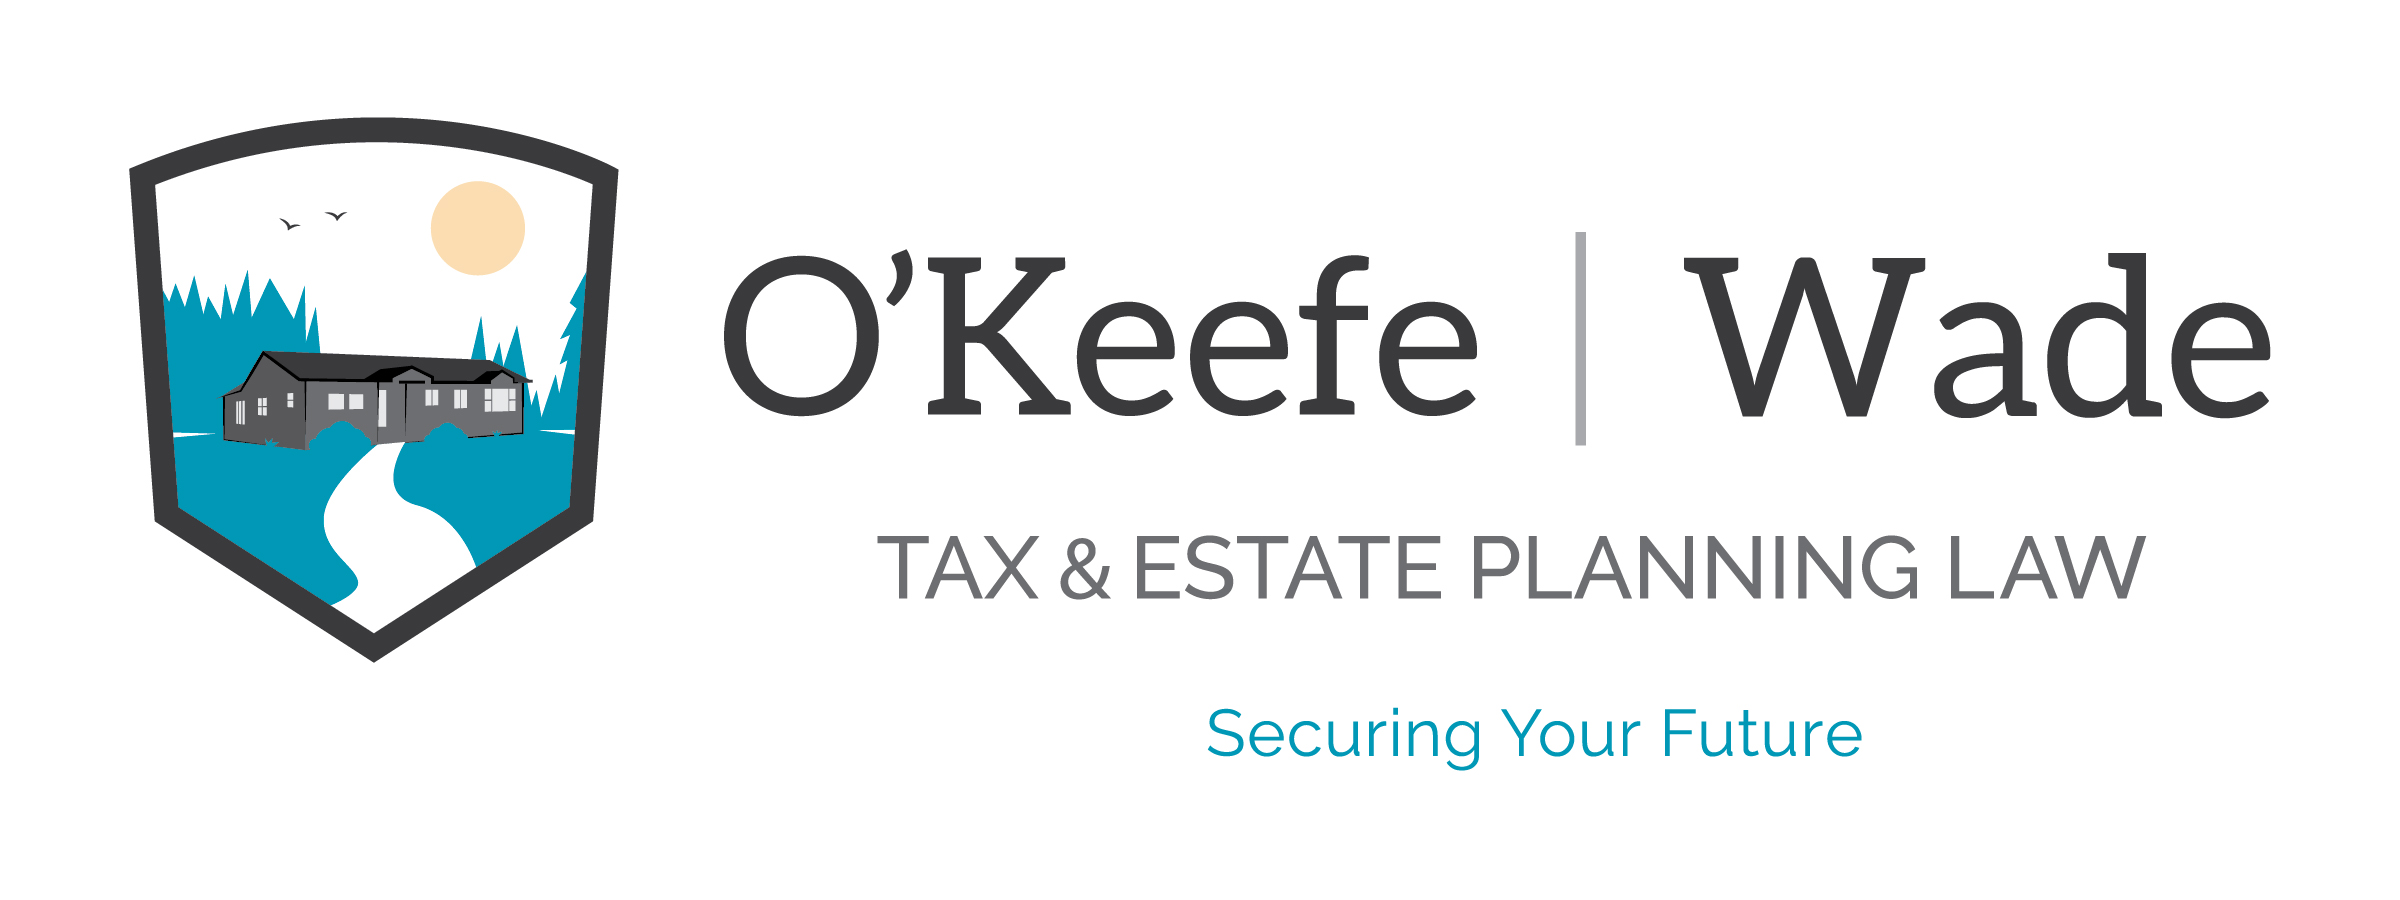 O'Keefe Wade Tax and Estate Planning Law logo